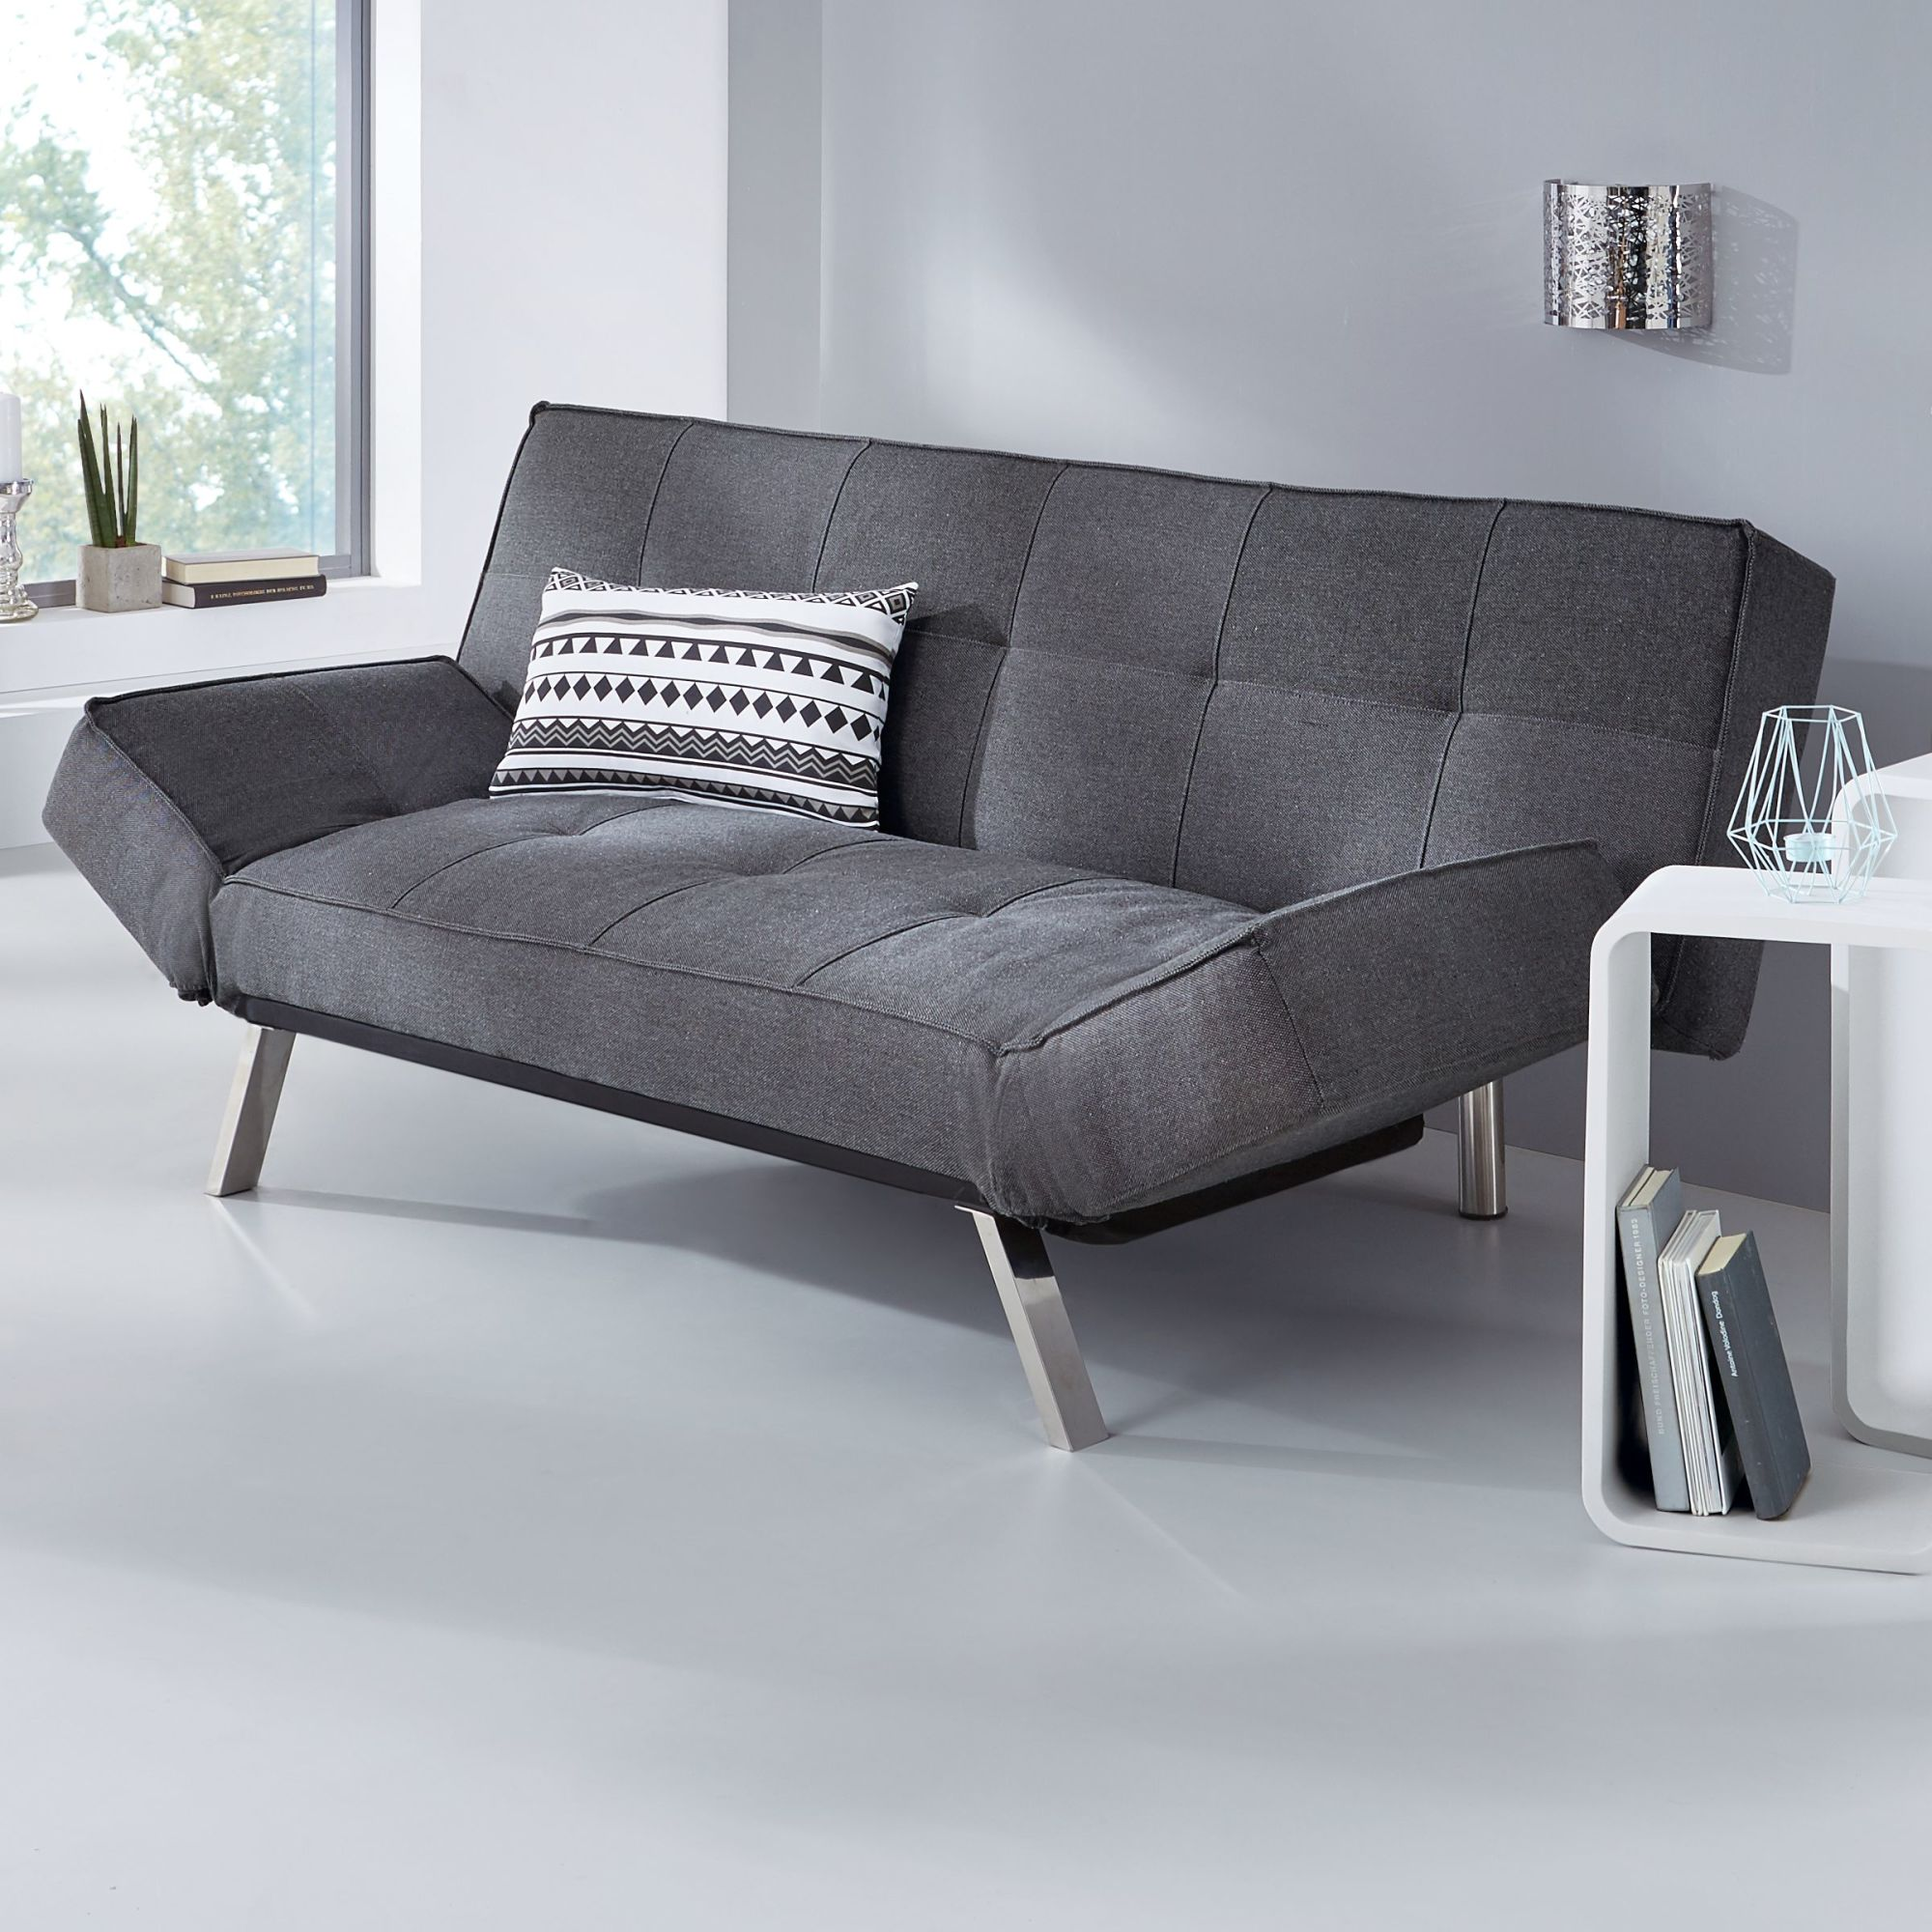 Schlafsofa new york bestseller shop f r m bel und for Schlafsofa new york